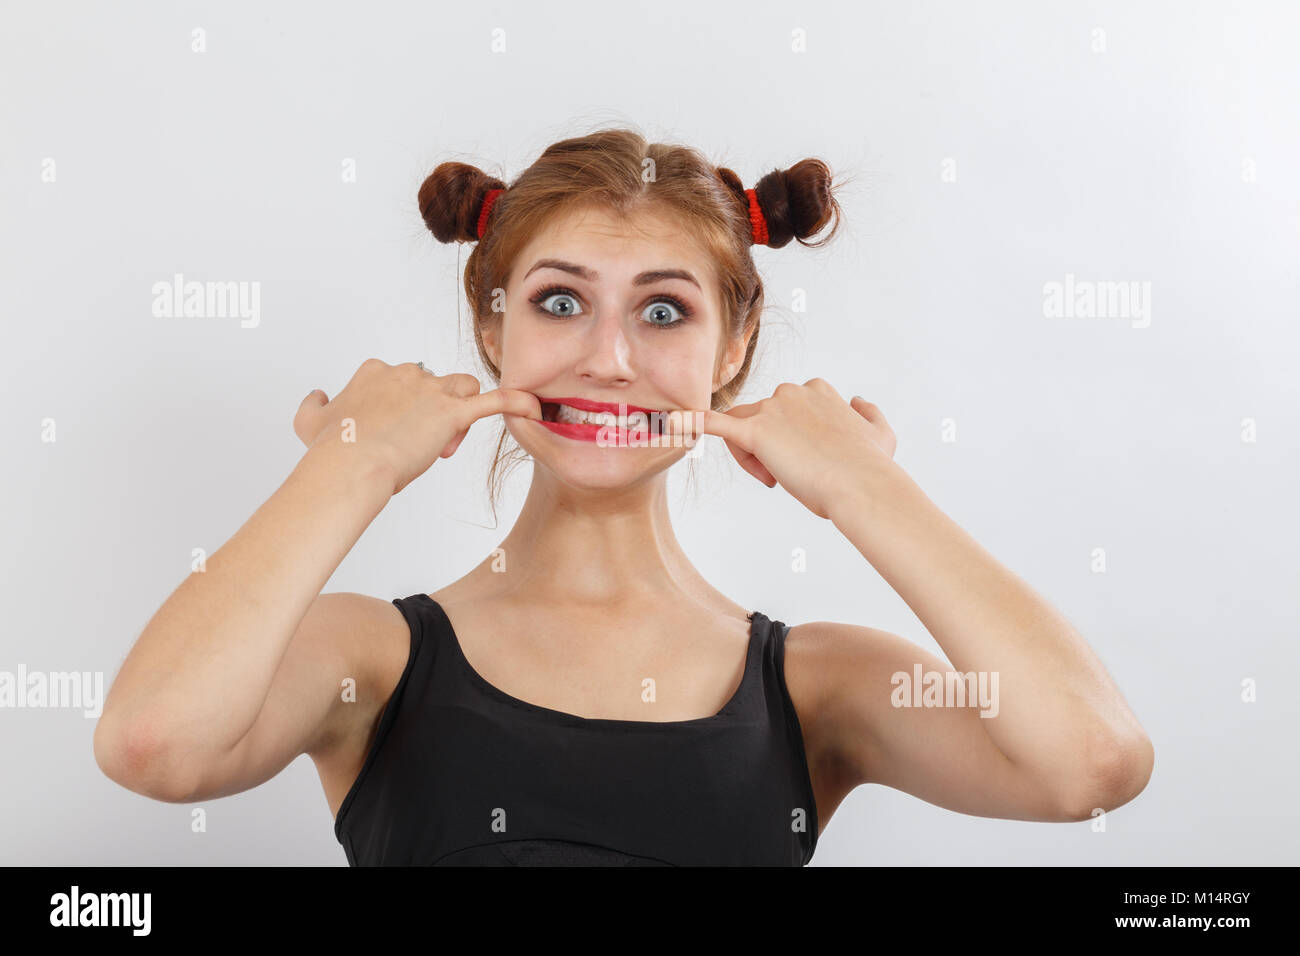 fun woman grimacing shows her teeth on white background - Stock Image